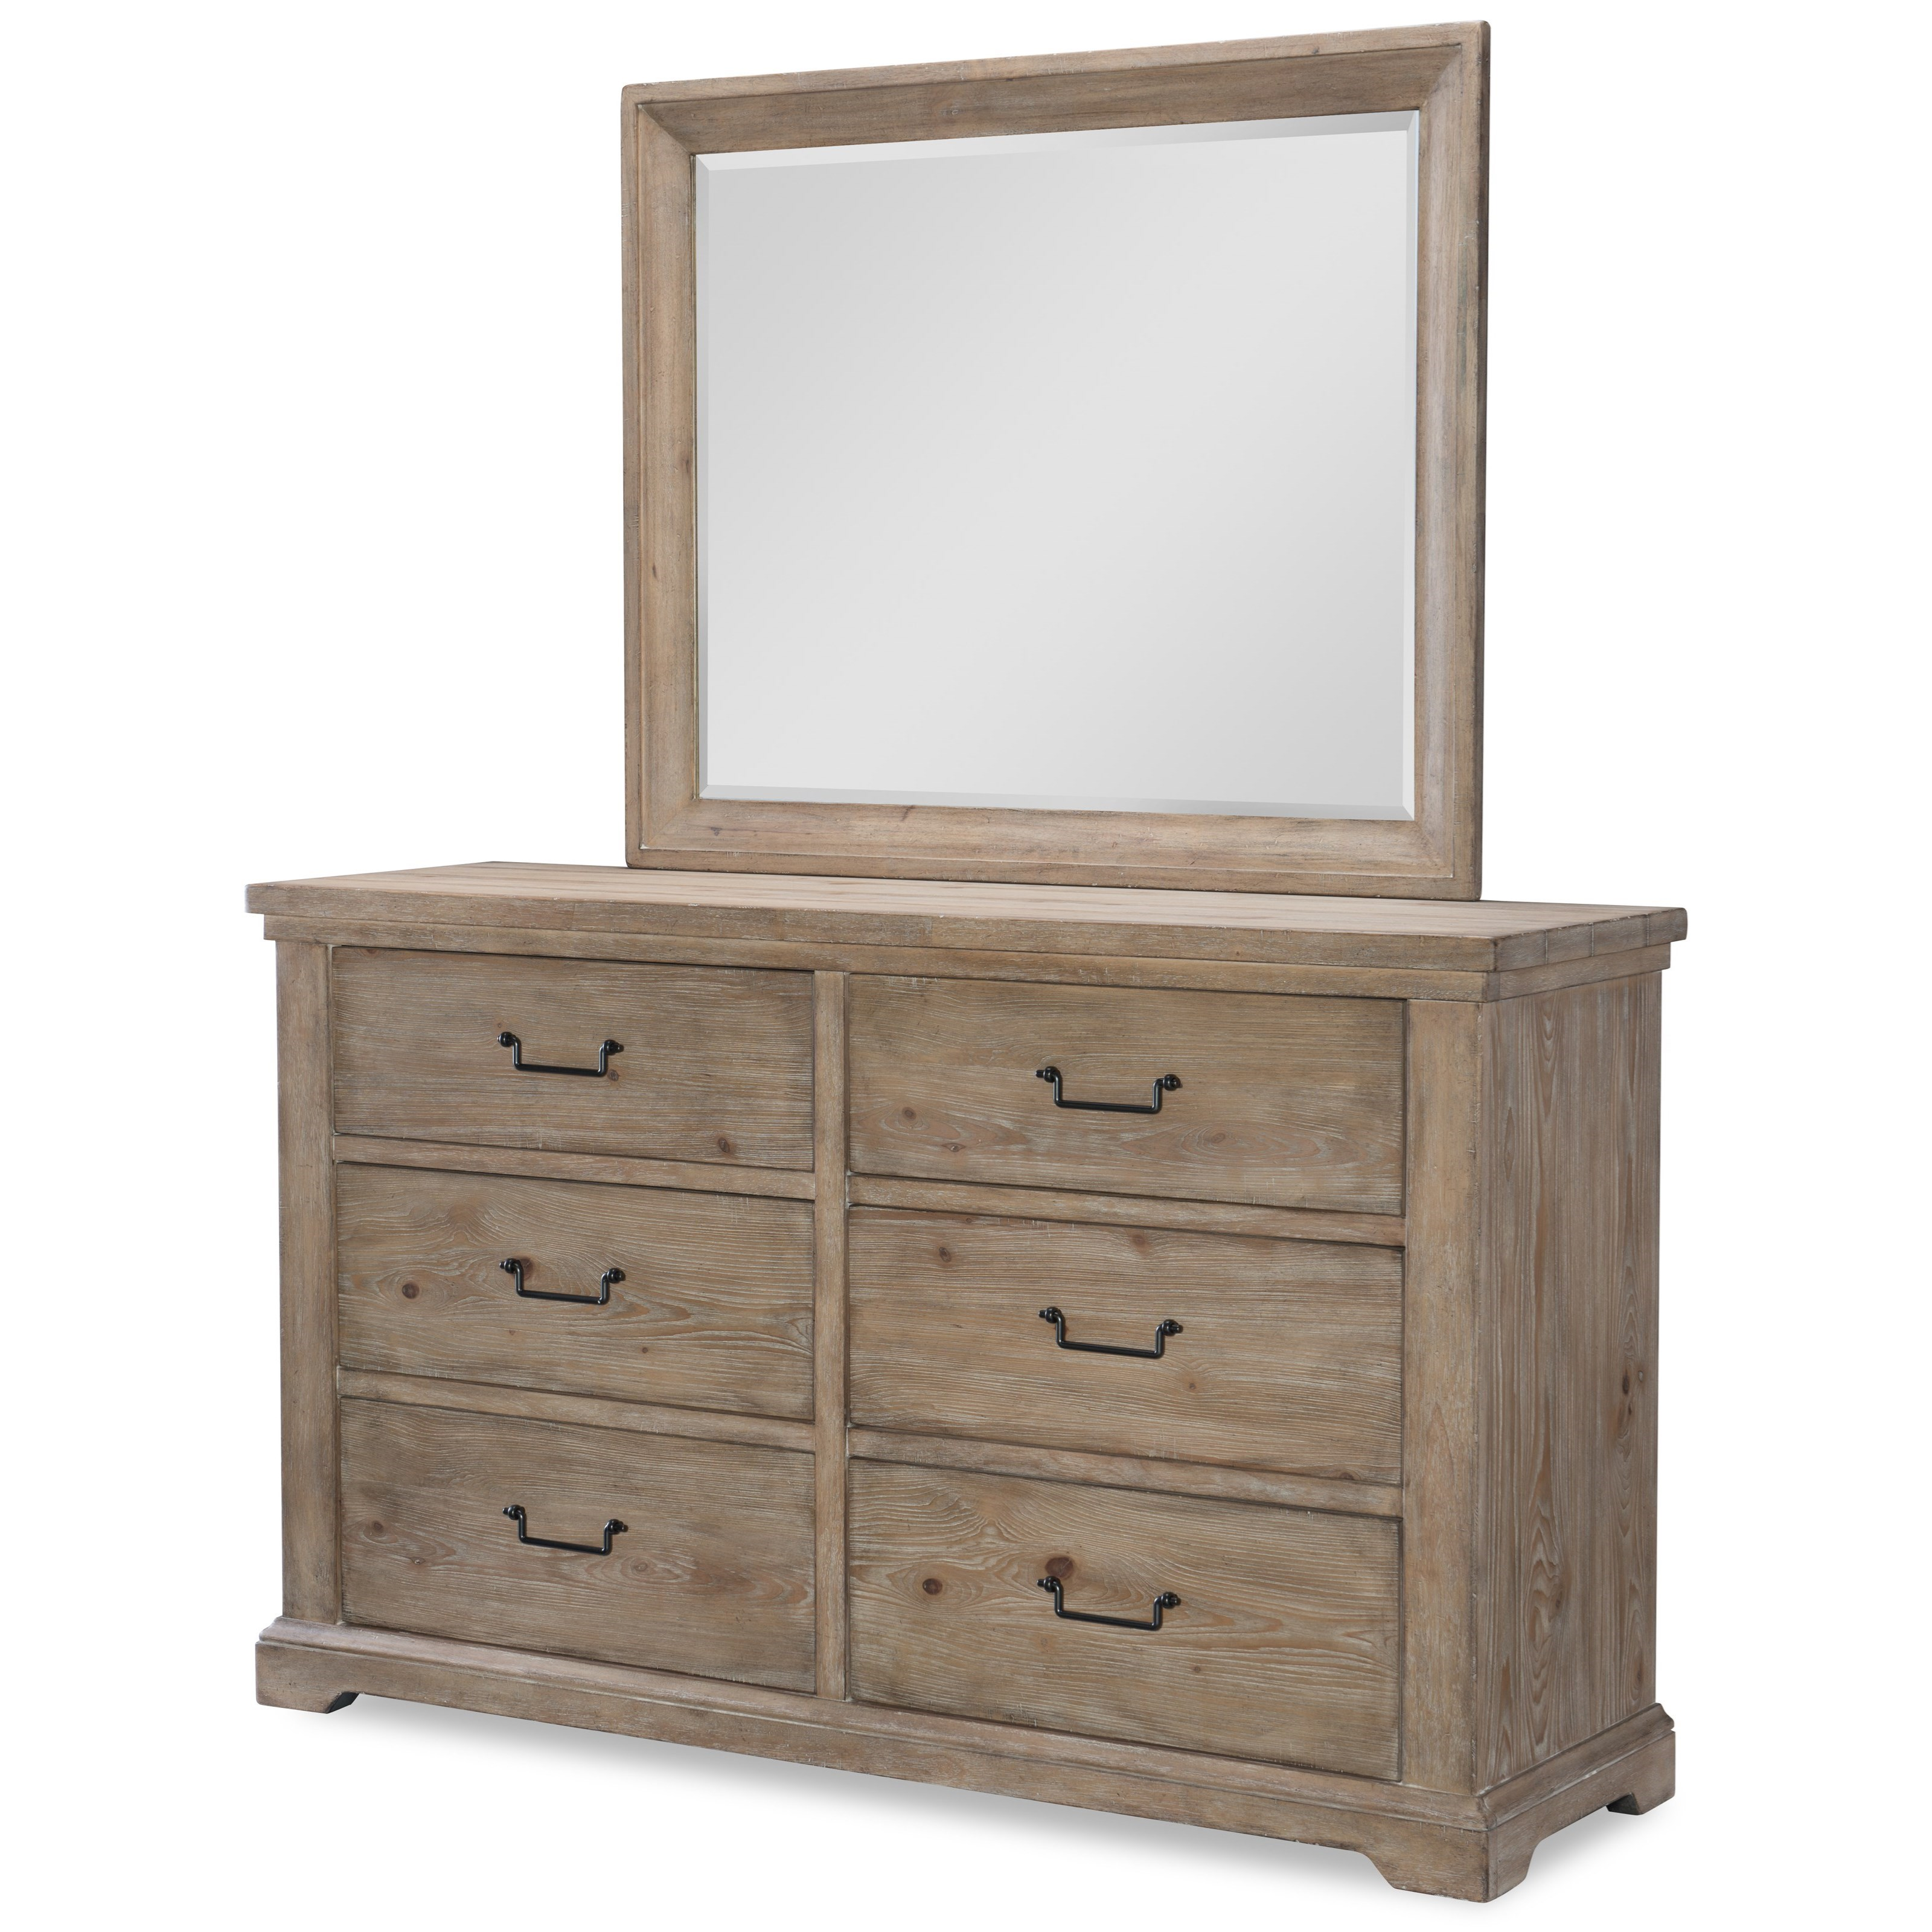 Monteverdi  Dresser and Mirror Set by Rachael Ray Home by Legacy Classic at Fashion Furniture